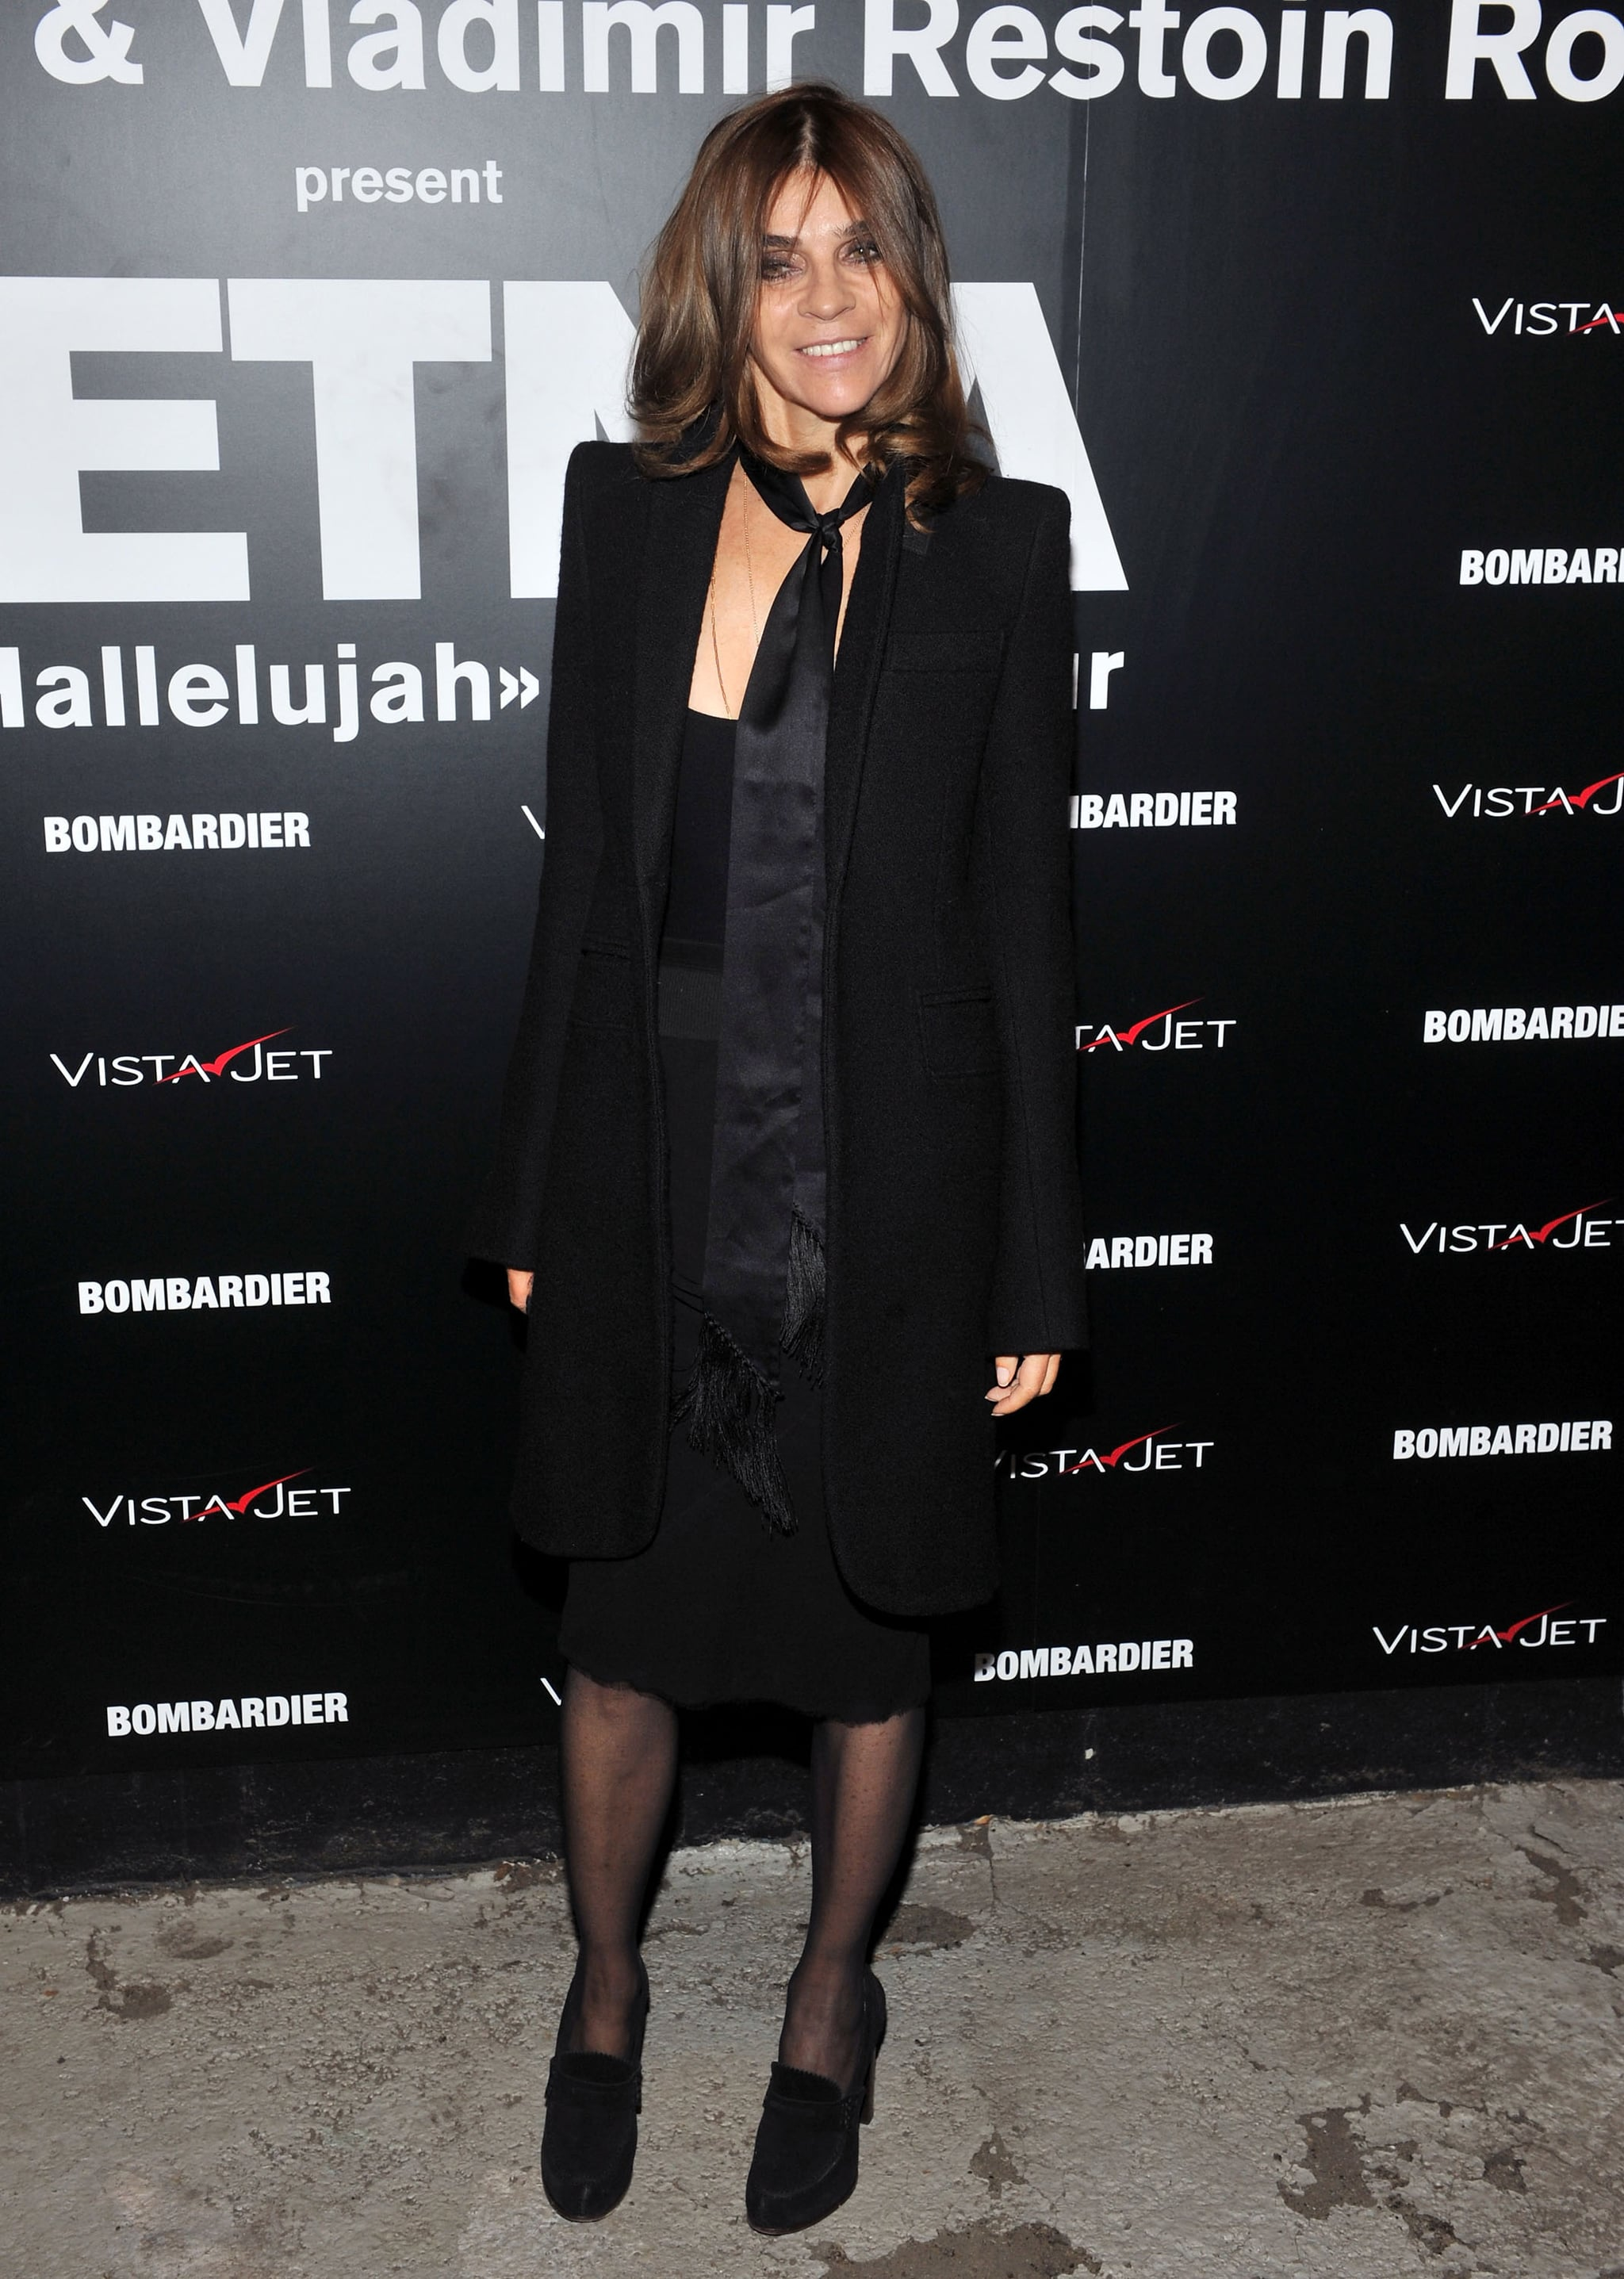 Exclusive: Carine Roitfeld Unveils First Feature as Harpers BAZAAR Global Fashion Director